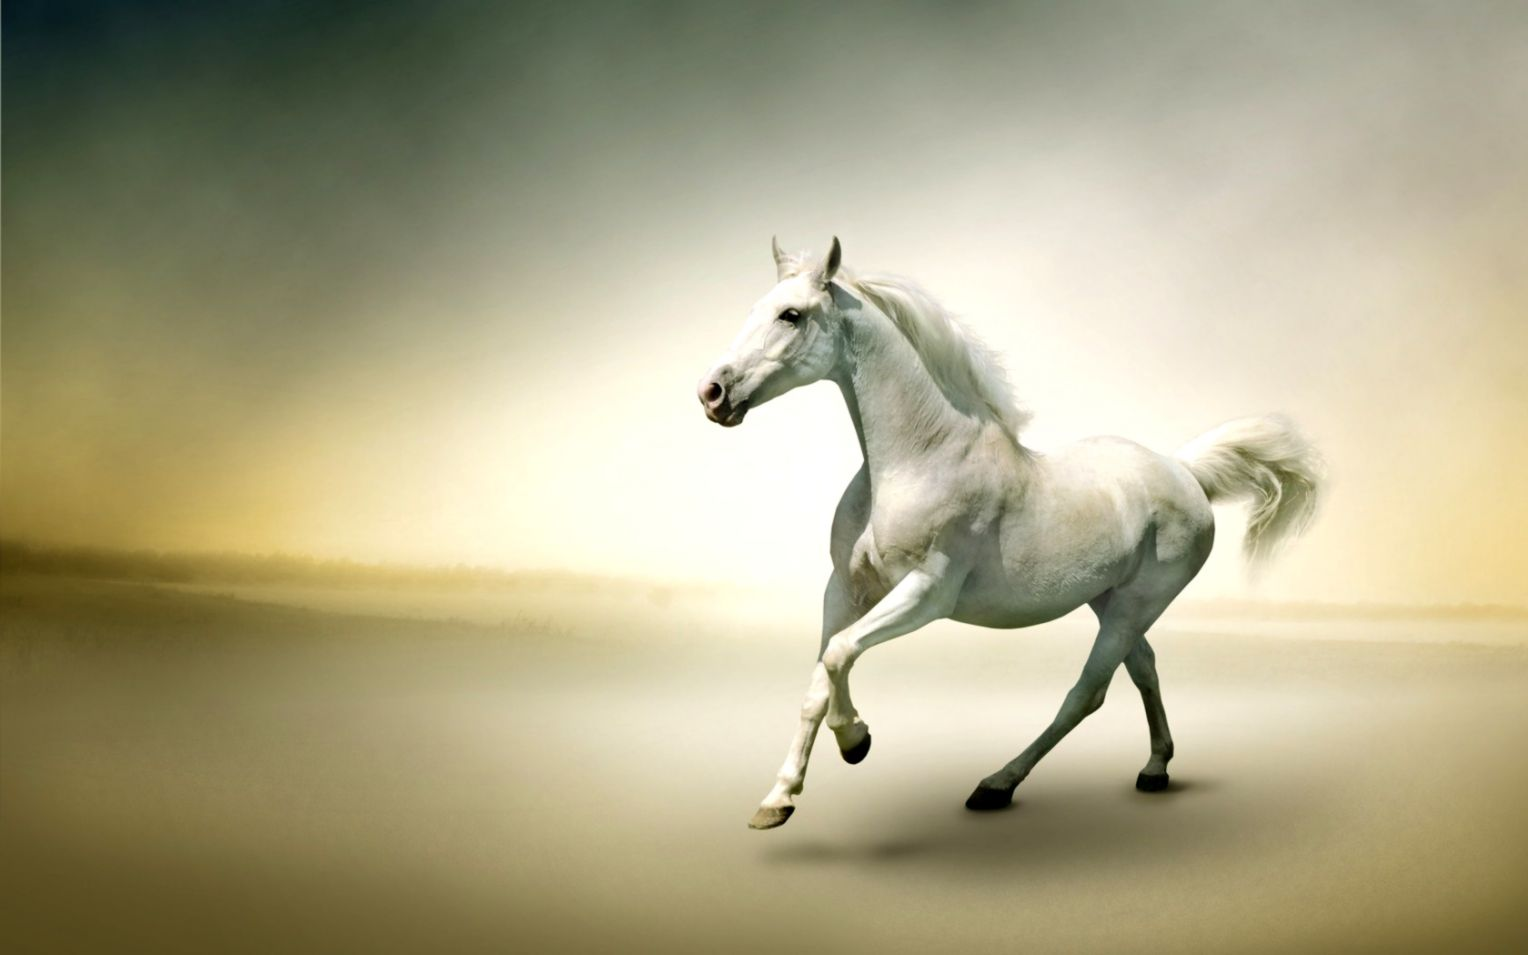 Good   Wallpaper Horse Desert - beauty-white-horse-animal-pictures-running-desert-wallpaper  Pictures_91981.jpg